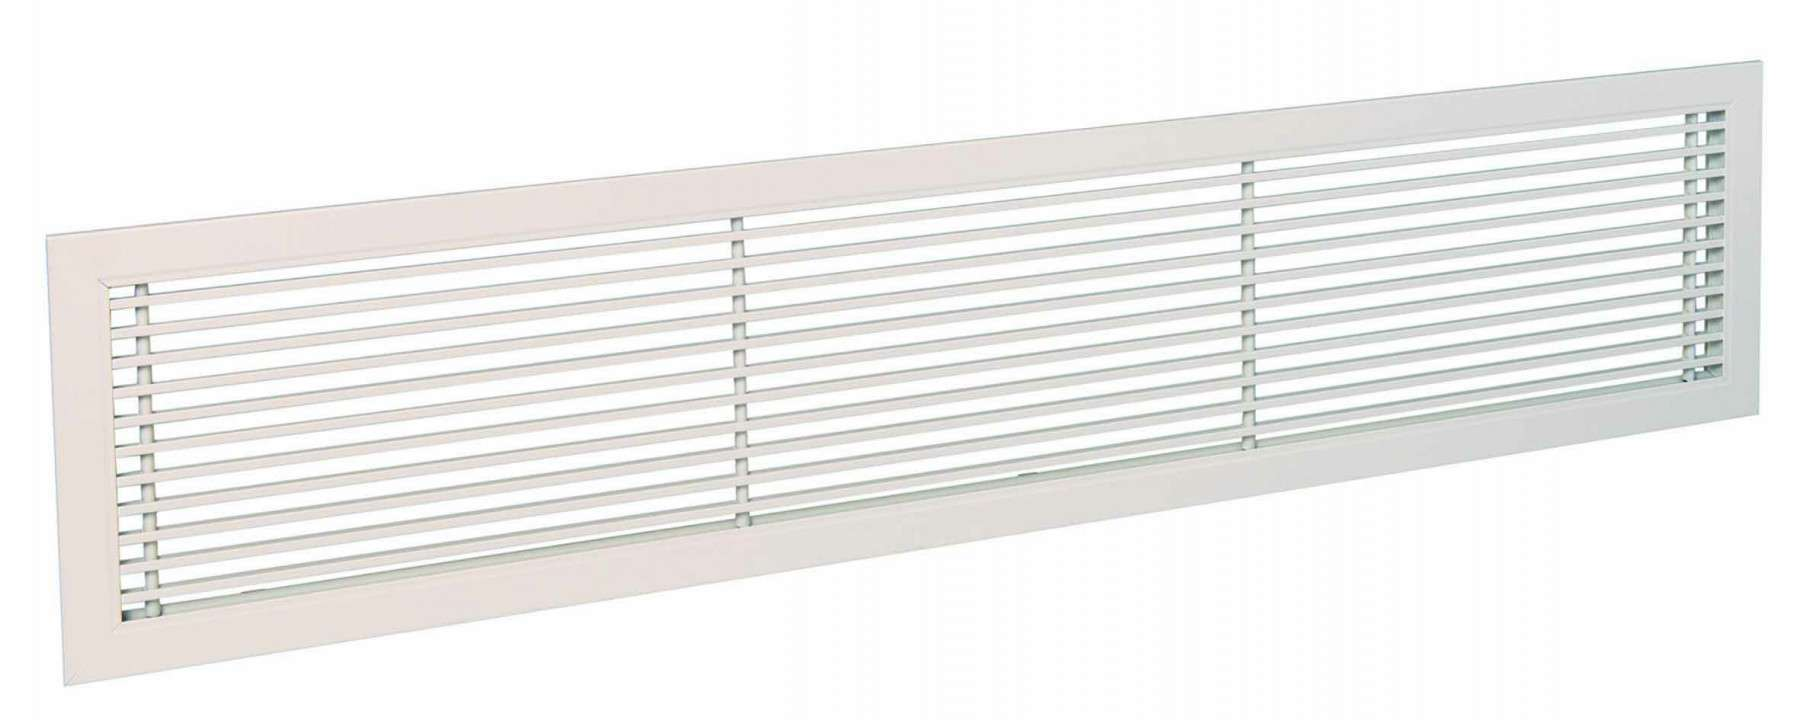 Grilles intérieures GRIDLINED WALL 600X150 ANOD Aldes 11050251